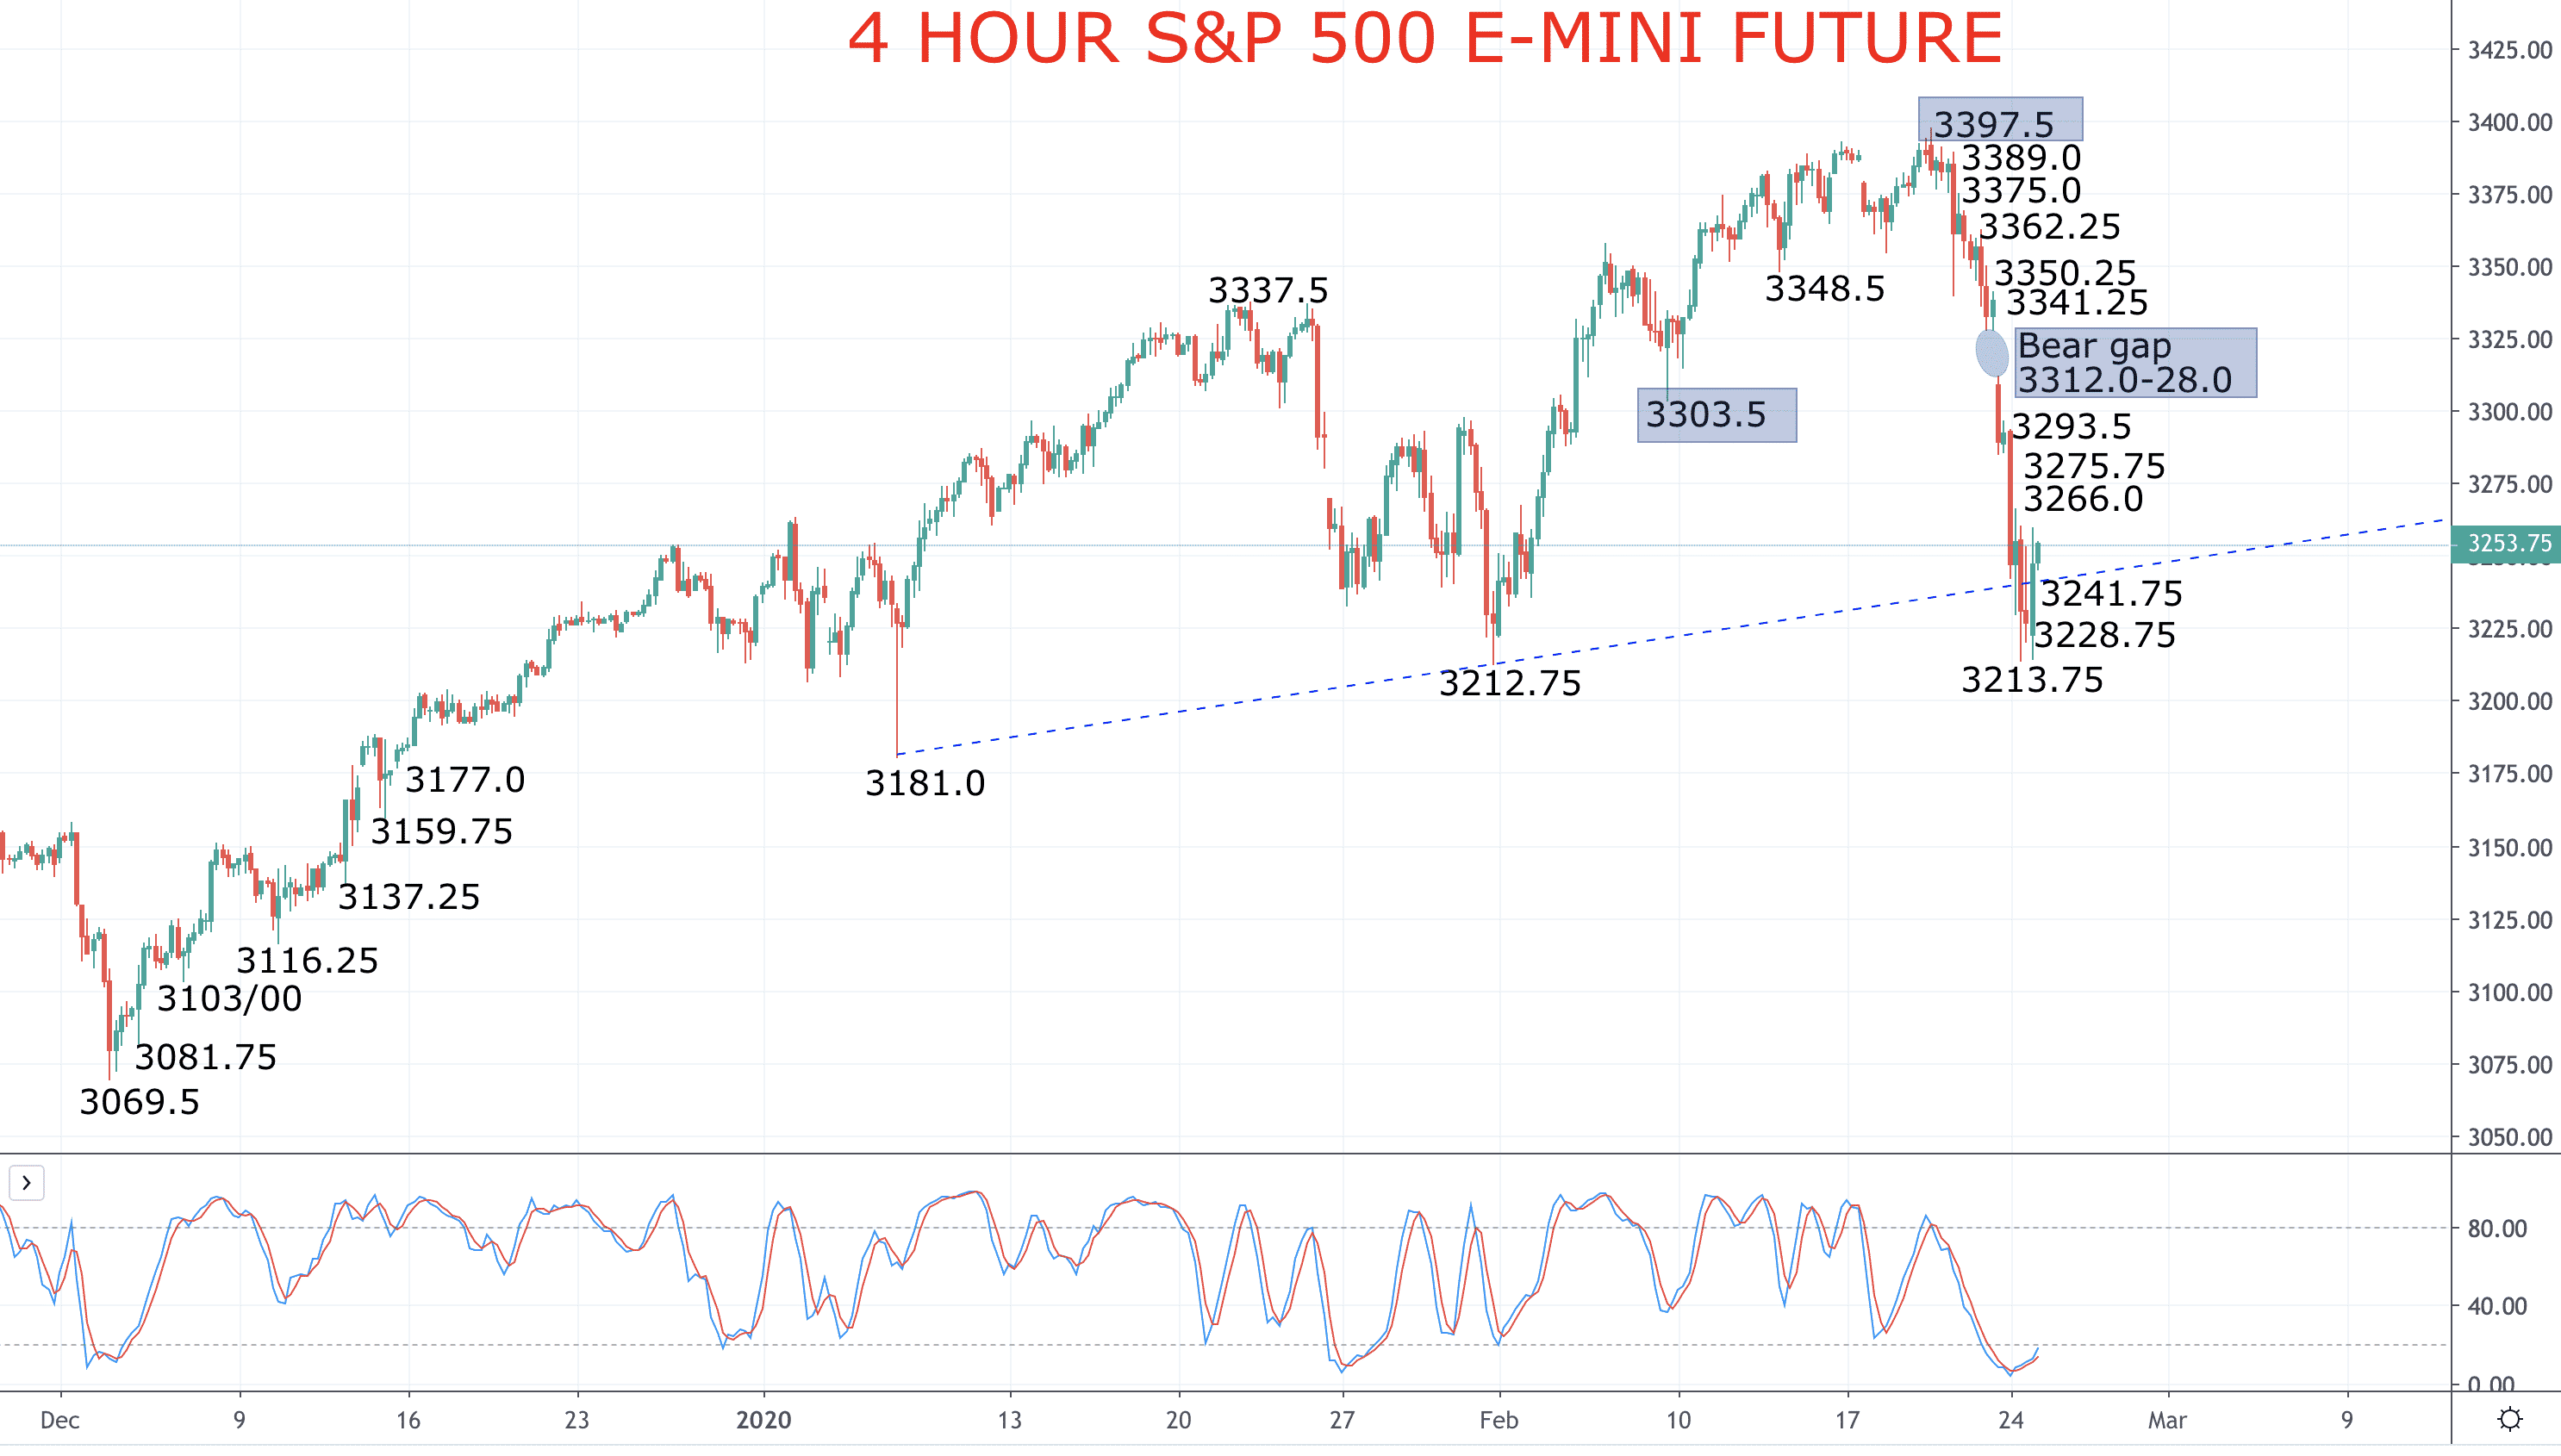 Stocks shift to intermediate-term bearish! (S&P 500 forecast) Image